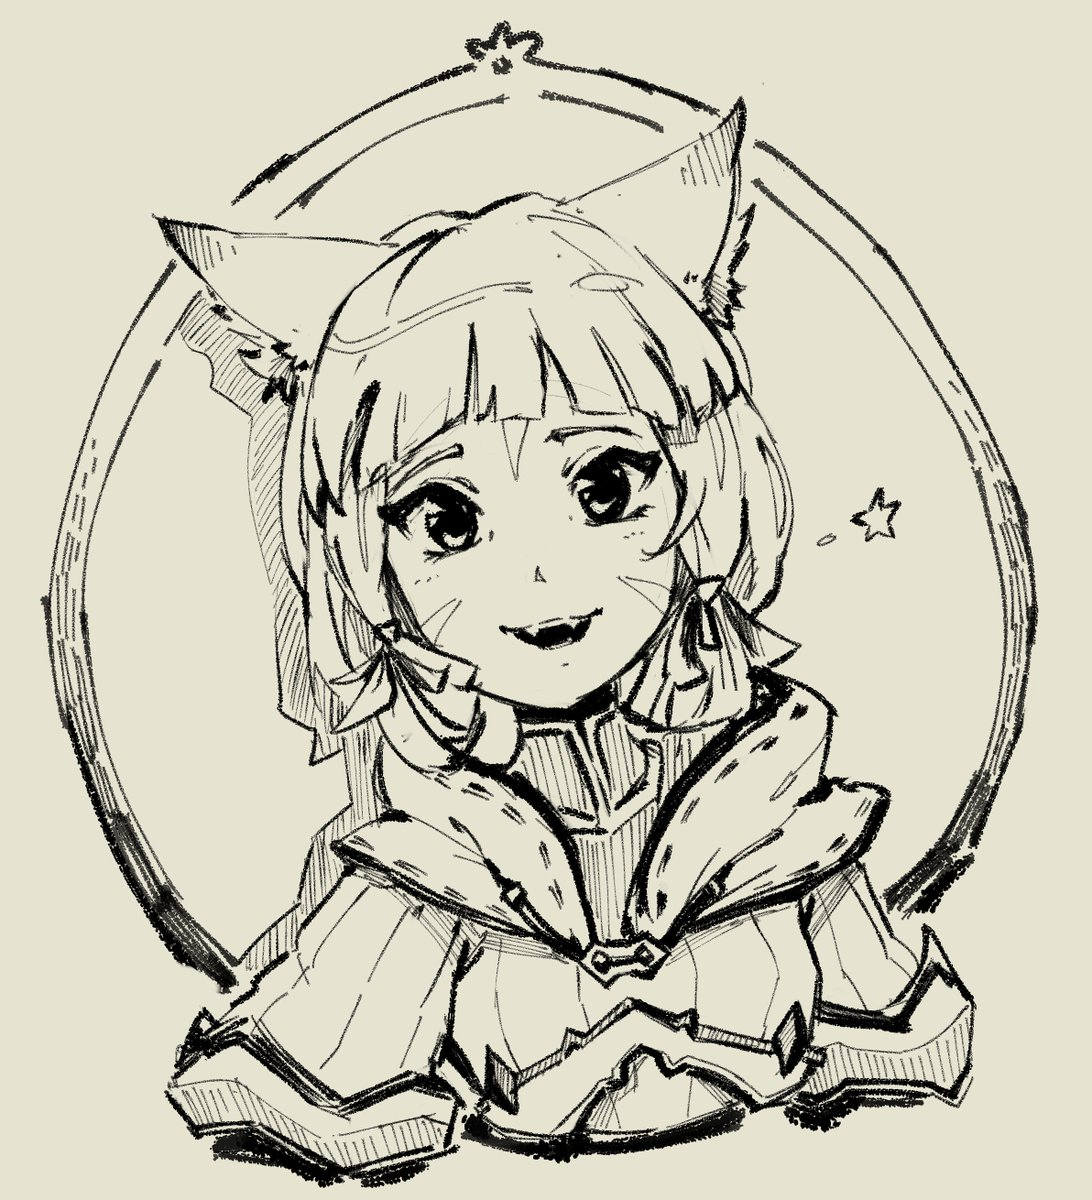 I made myself a new sketching pen in CSP and I really like it  #Xenoblade2 #Nia #ゼノブレイド2 #ニア<br>http://pic.twitter.com/2aGYjgabBW